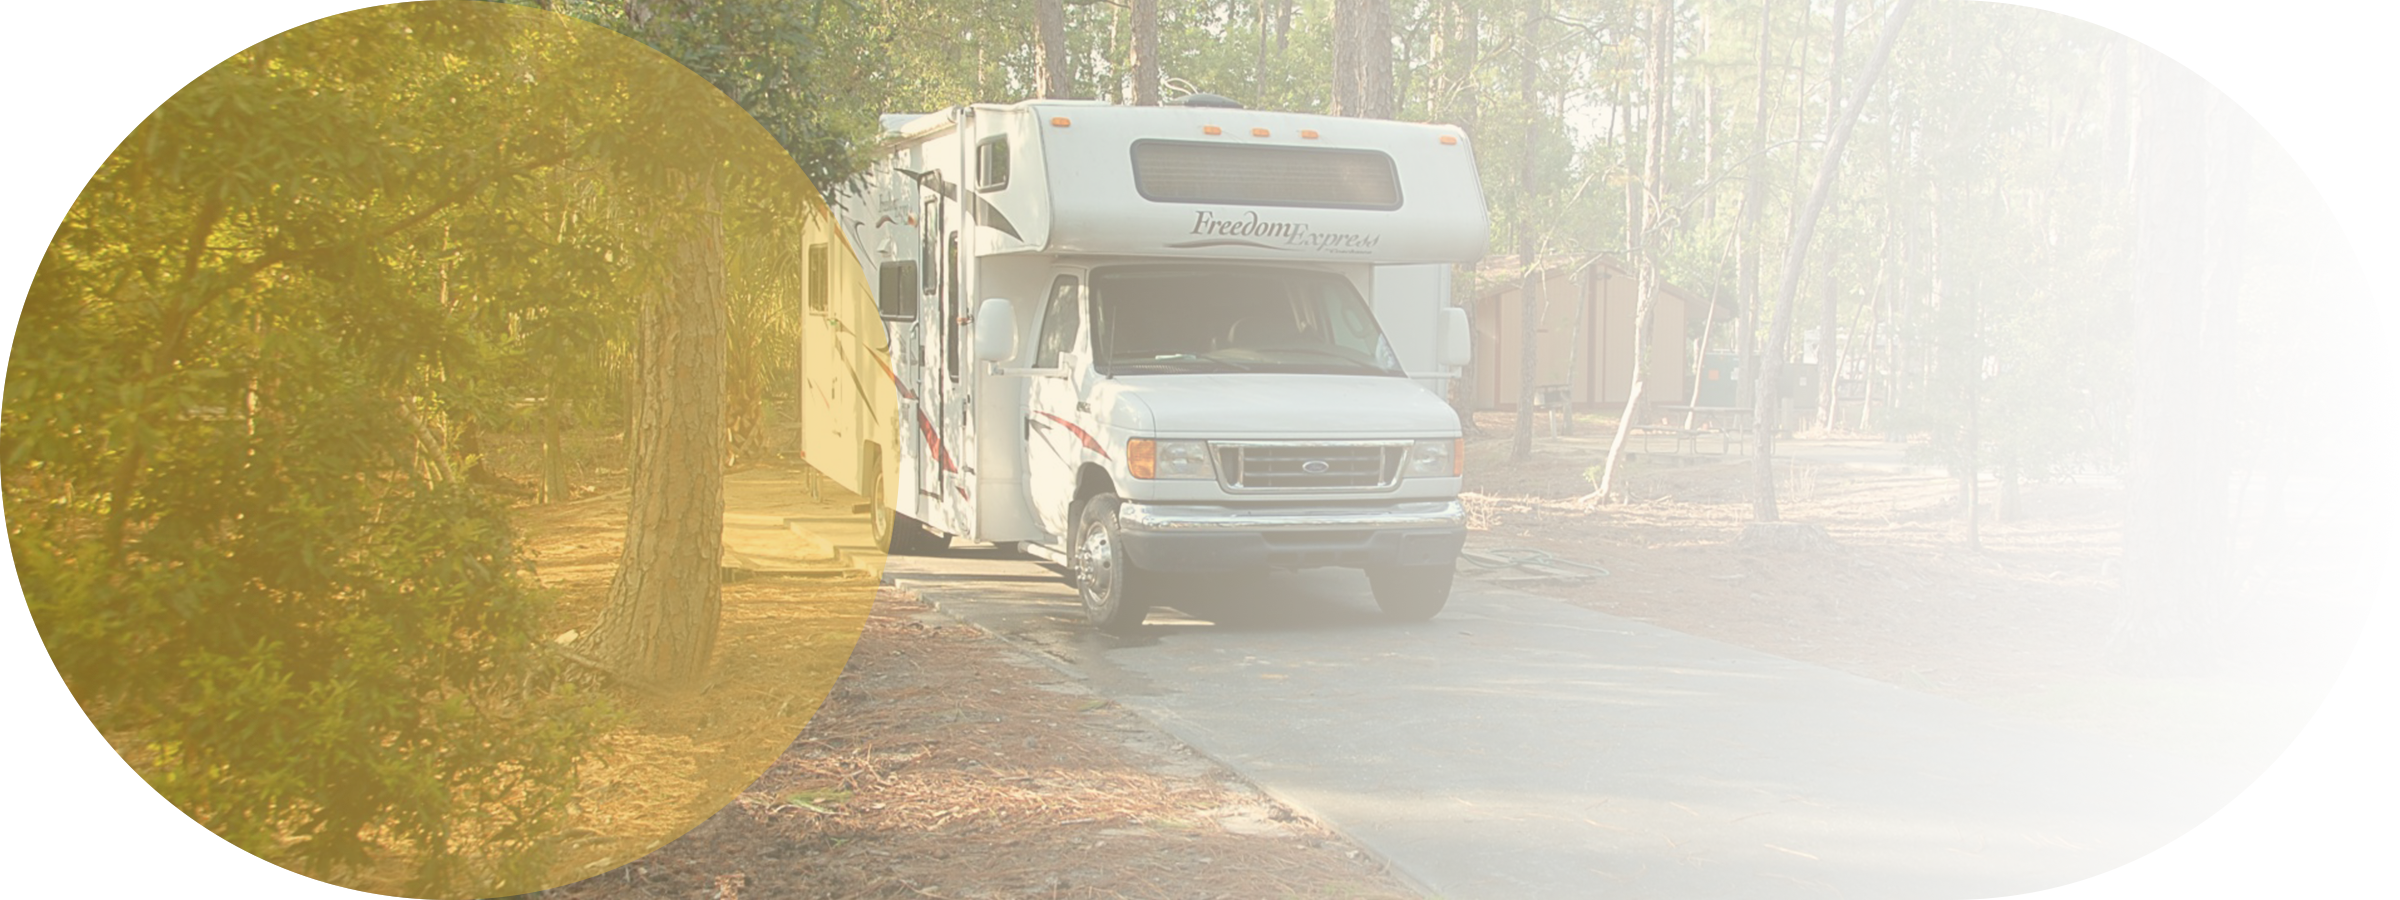 Holland State Park All Seasons Rv Blog 50 Amp Hookup The Beach Campground This Is A Modern Area And Completely Paved Making It Perfect For Rvs Offers Full Hookups With Up To Electric